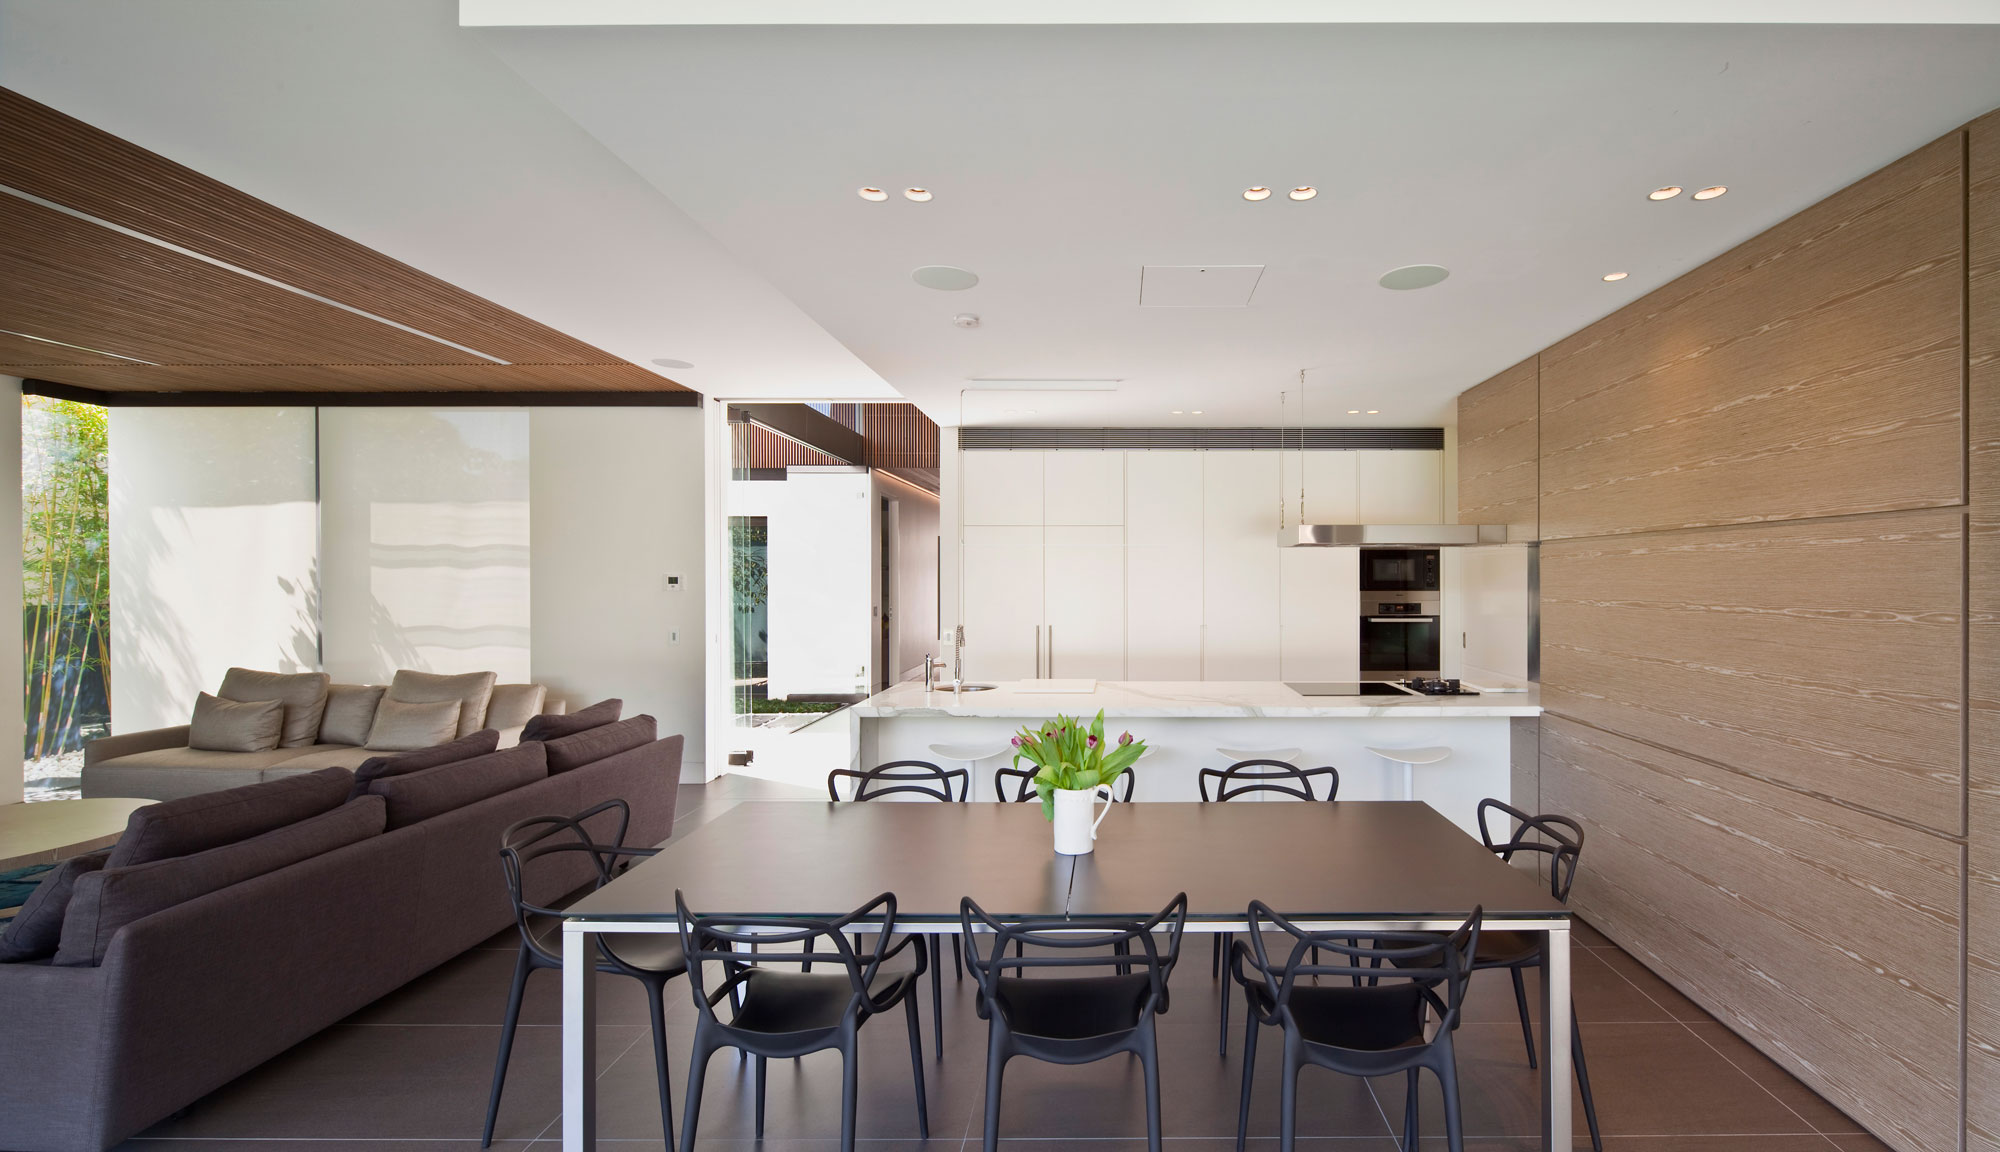 Z House by Bruce Stafford Architects